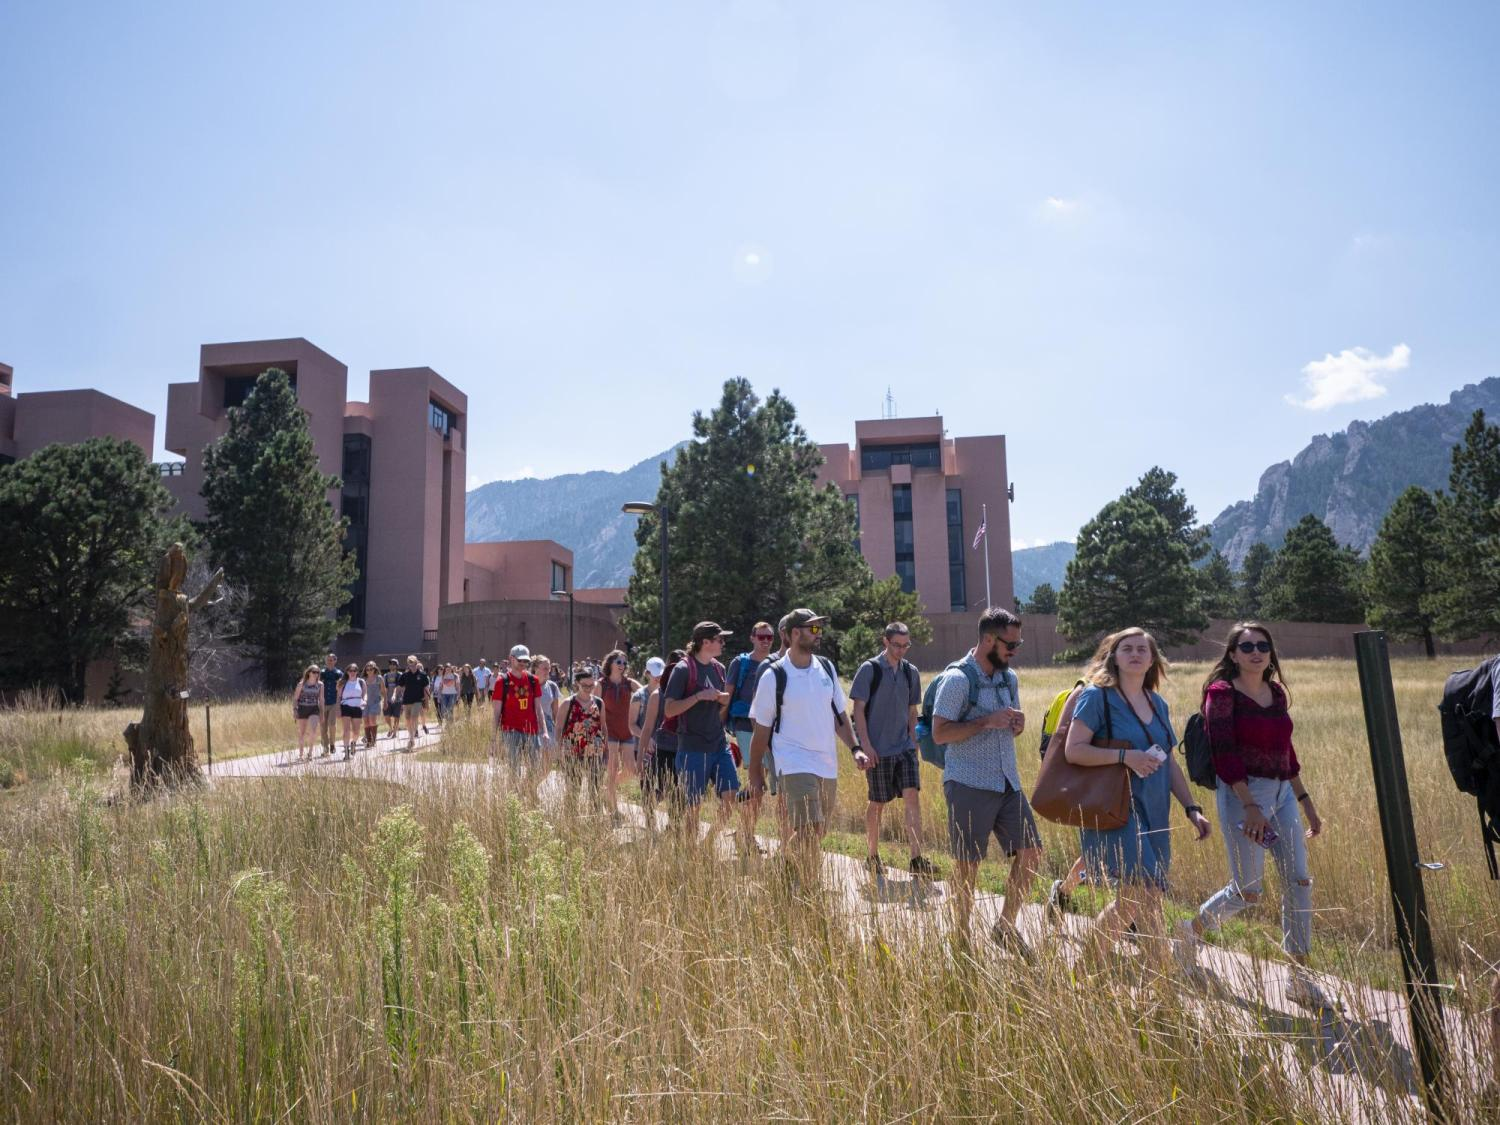 Students walking in front of NCAR